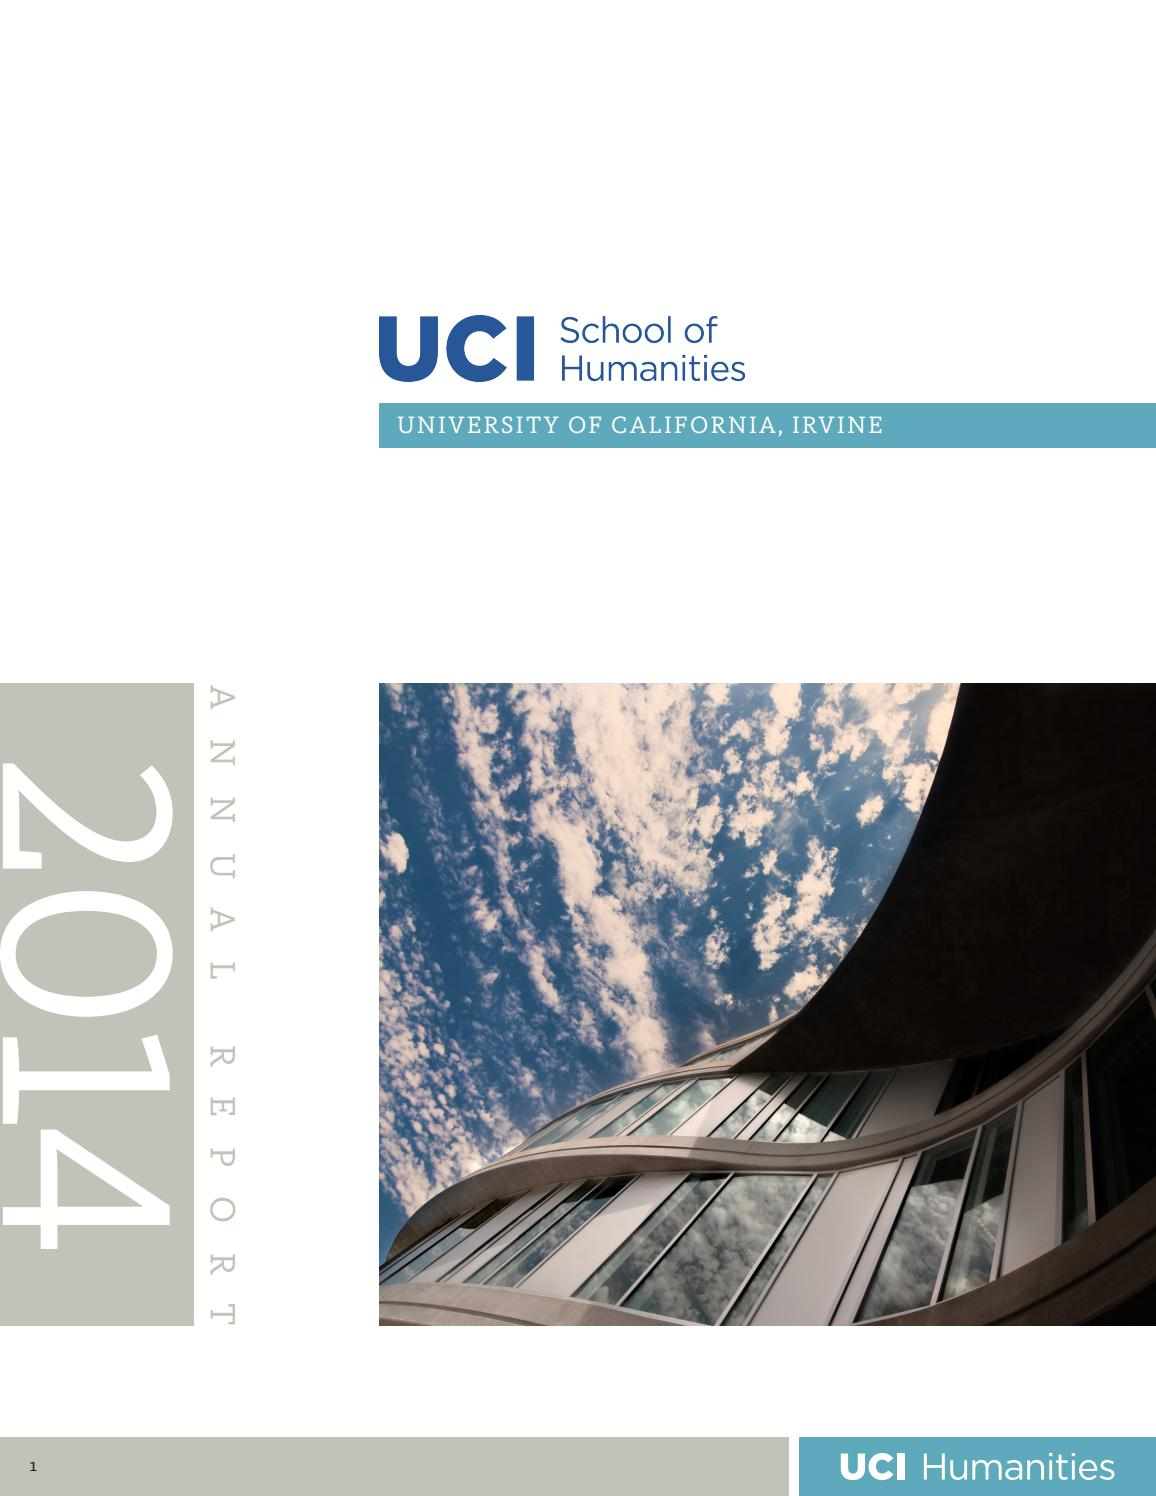 School Of Humanities 2014 Annual Report By Uci Humanities Issuu